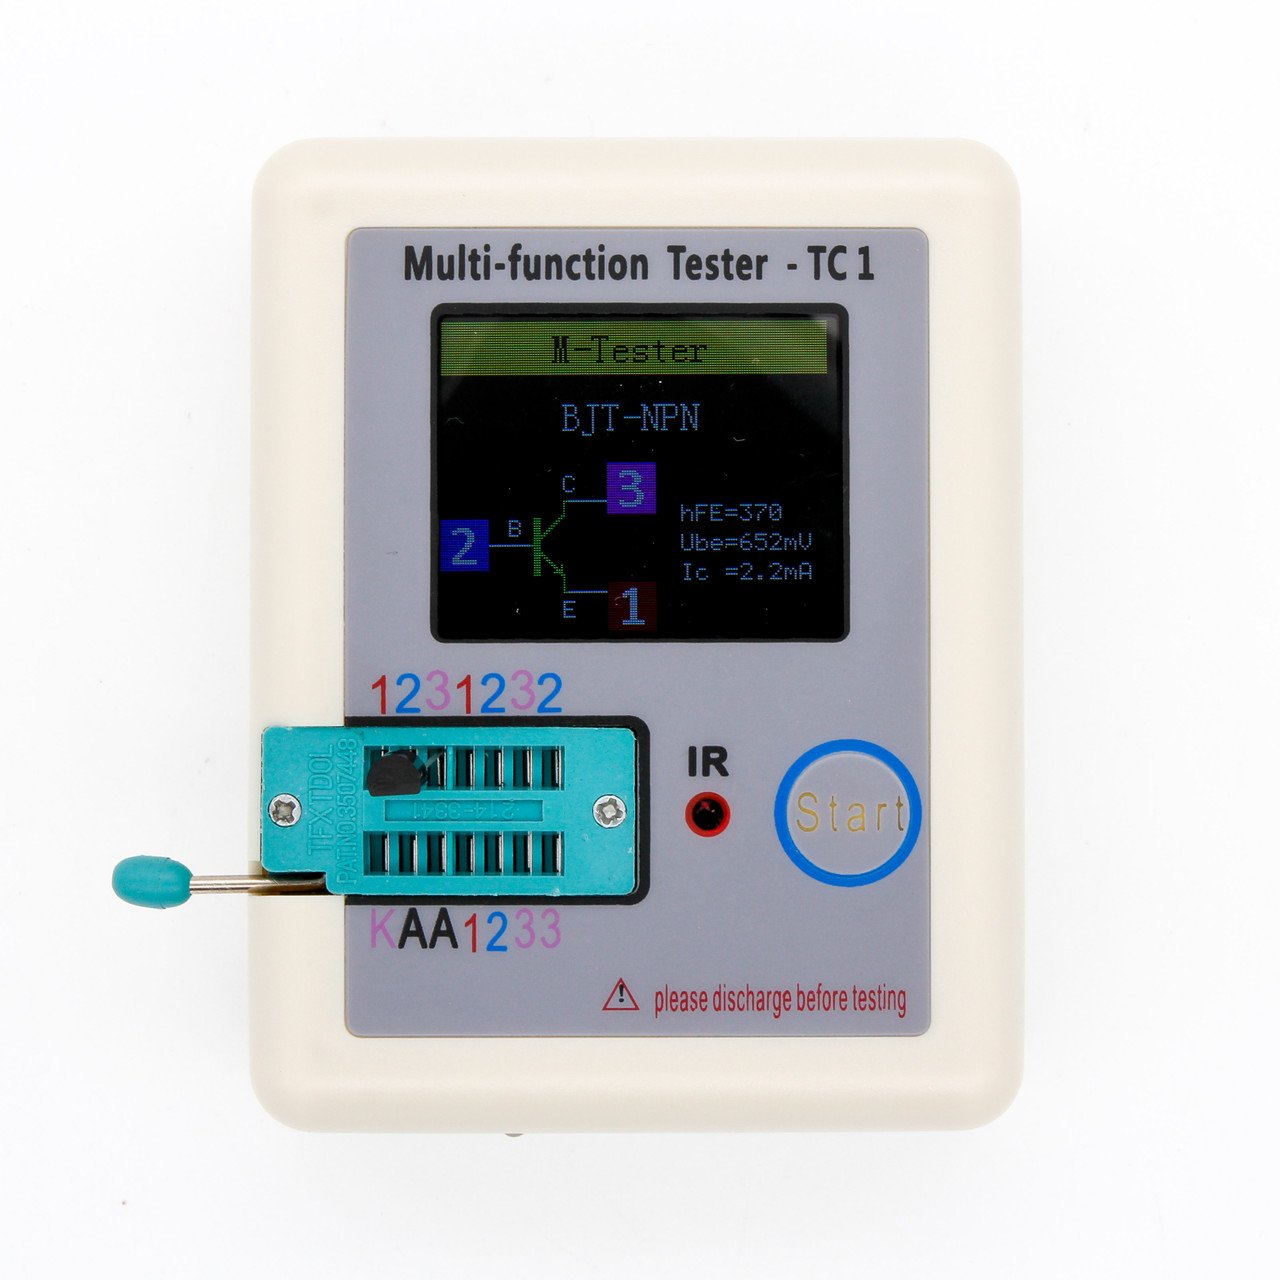 LCR-TC1 Multi-Function Tester